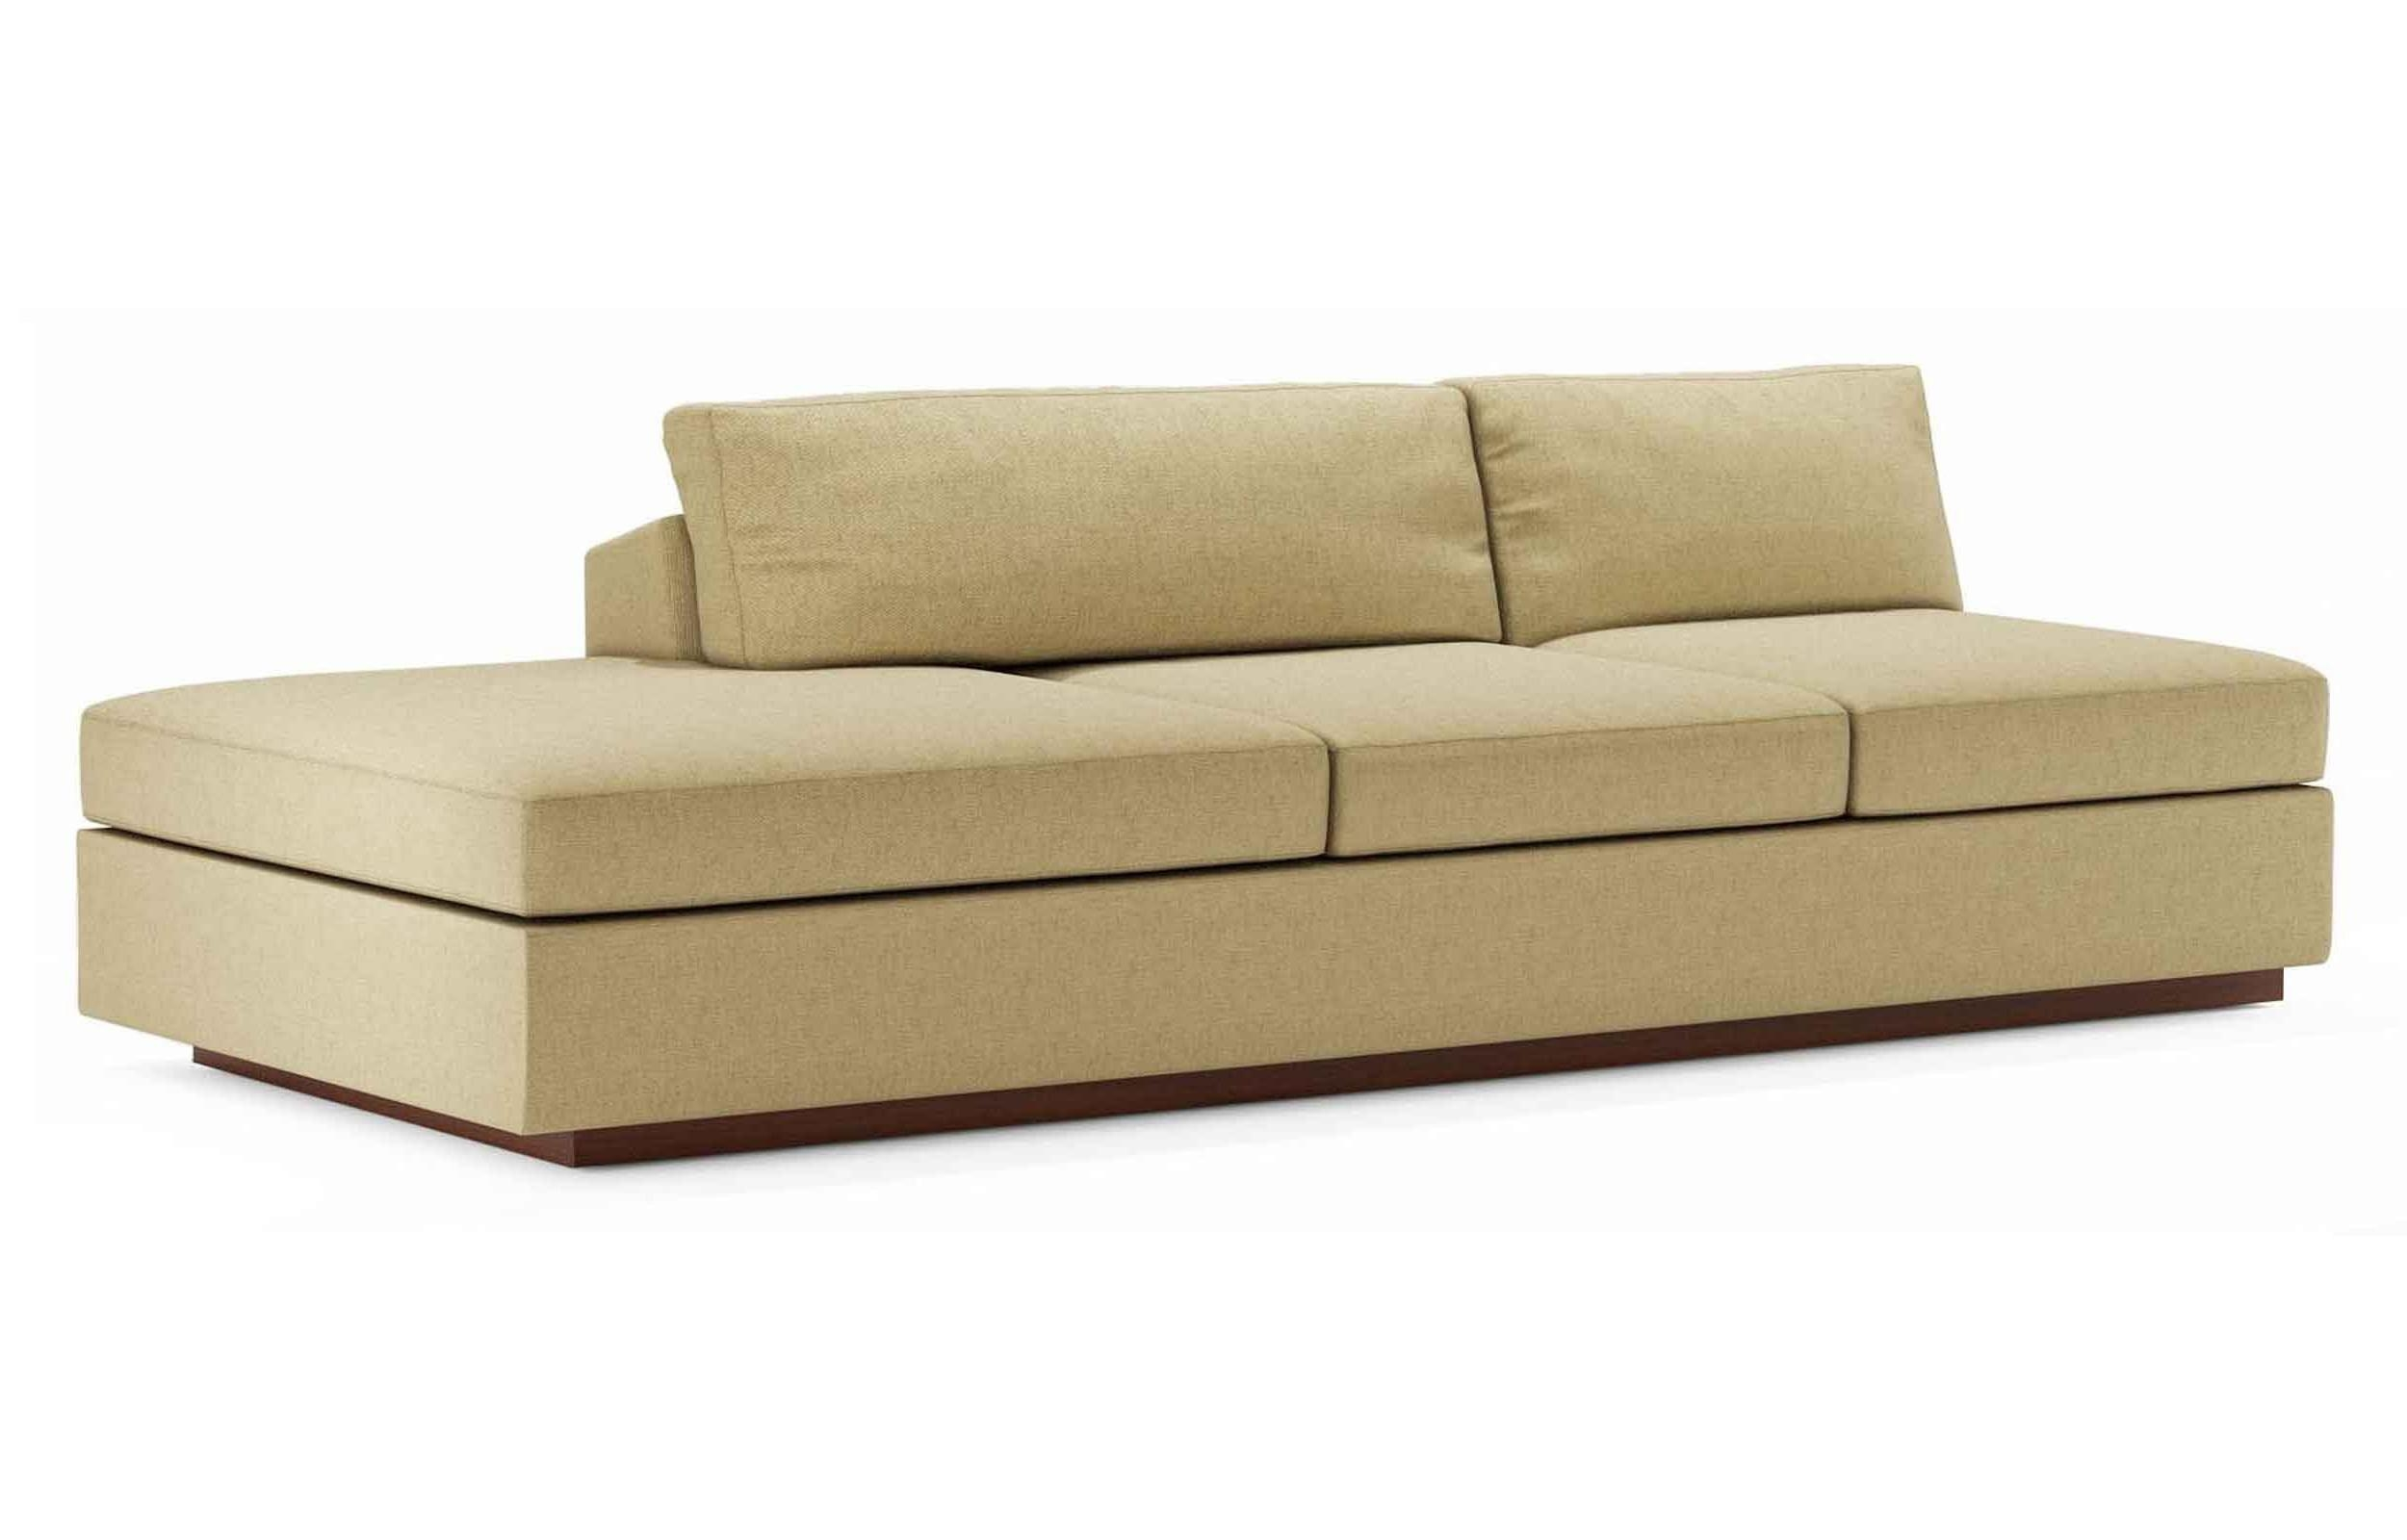 Furniture: Small Armless Sofa | Skyline Settee | Armless Settee With Regard To Small Armless Sofa (Image 11 of 20)